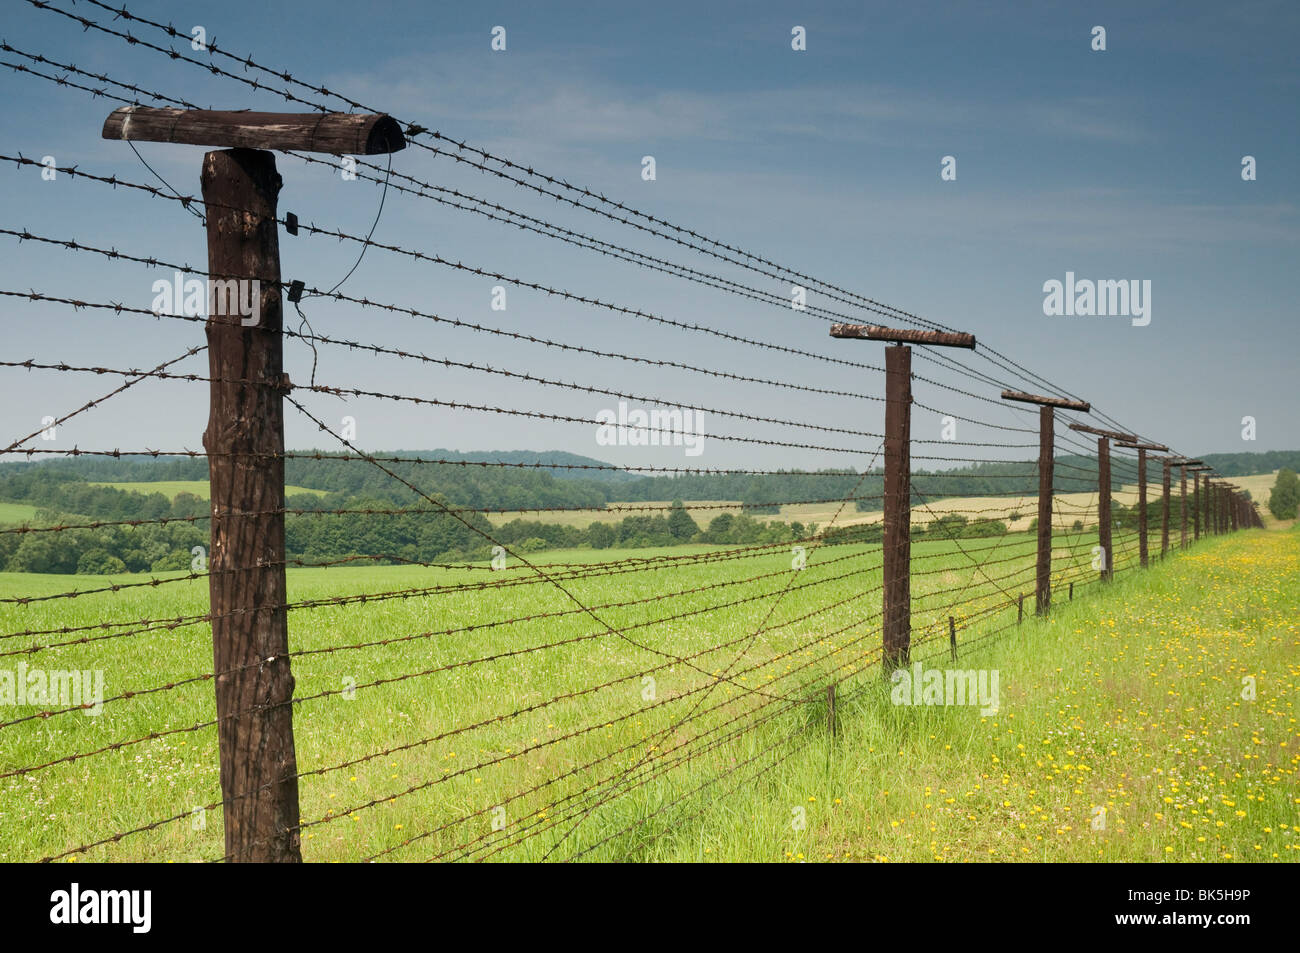 Stainless Steel Barbed Wire Iron Curtain - WIRE Center •